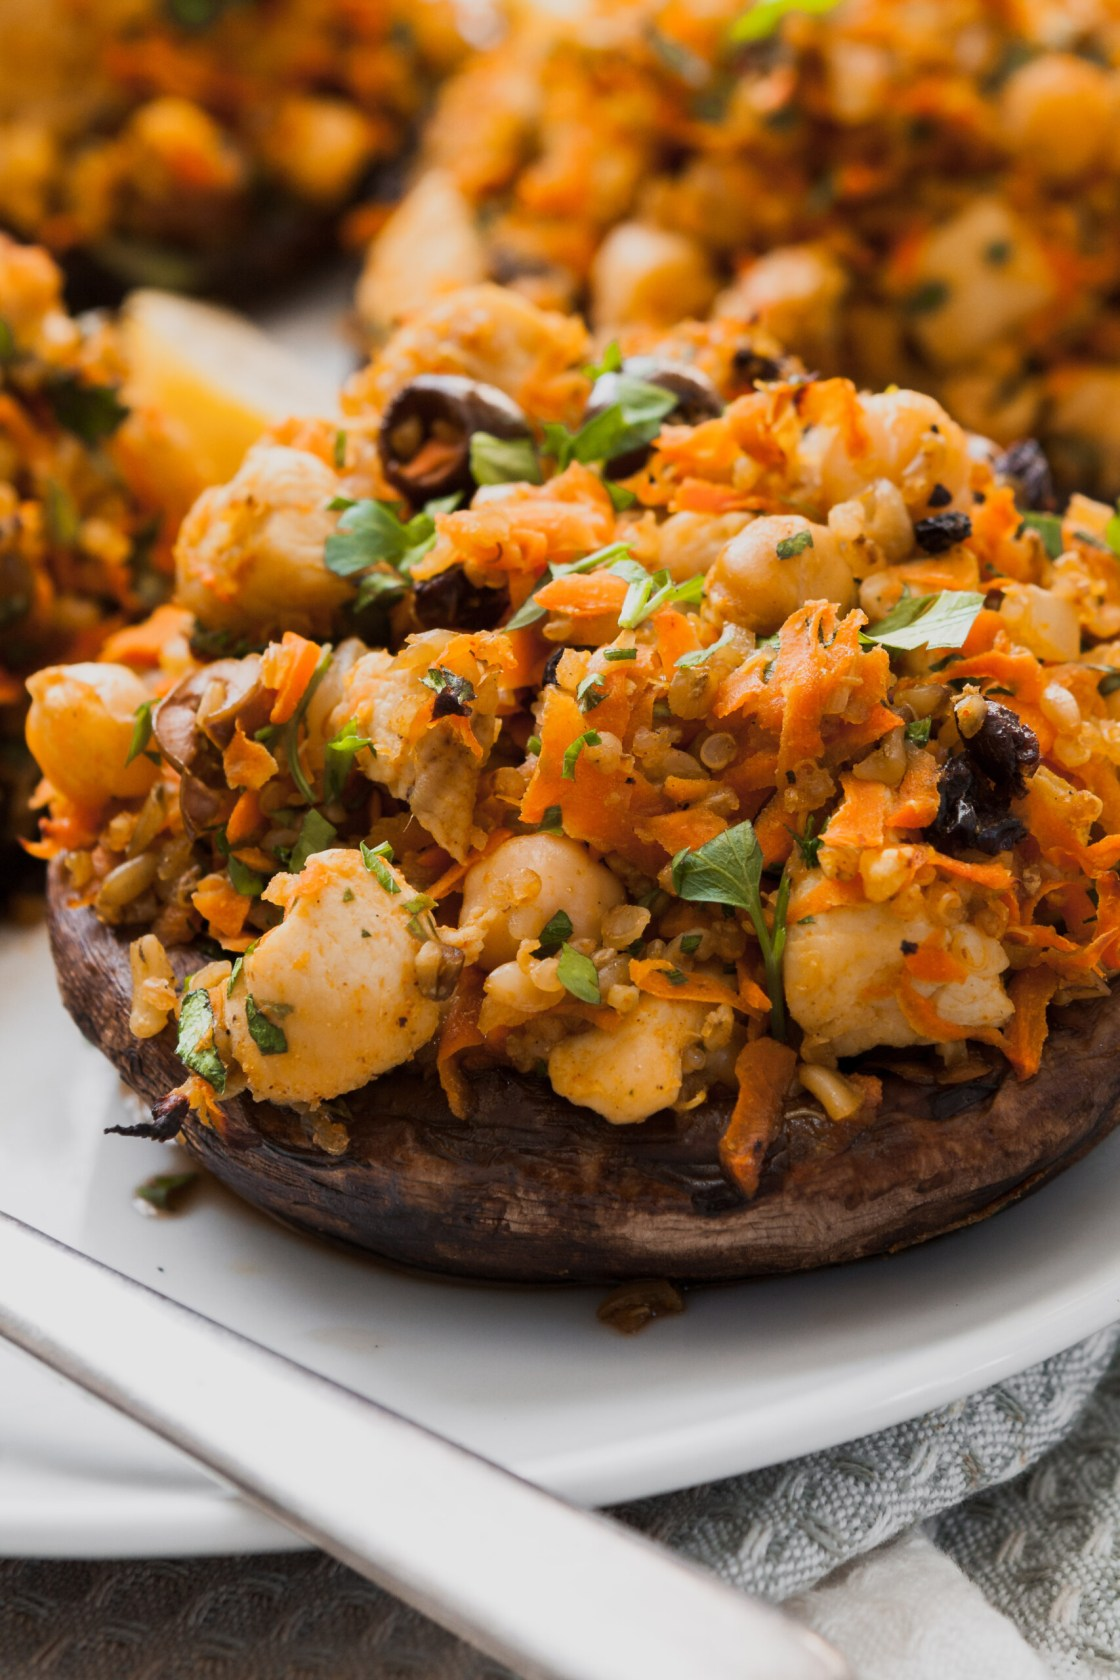 Packed with bold flavors and textures, these Moroccan Stuffed Portobellos with carrots, chickpeas, and ancient grains are not only healthy and satisfying, but easy to make and come together in under an hour! | from Lauren Grant of Zestful Kitchen